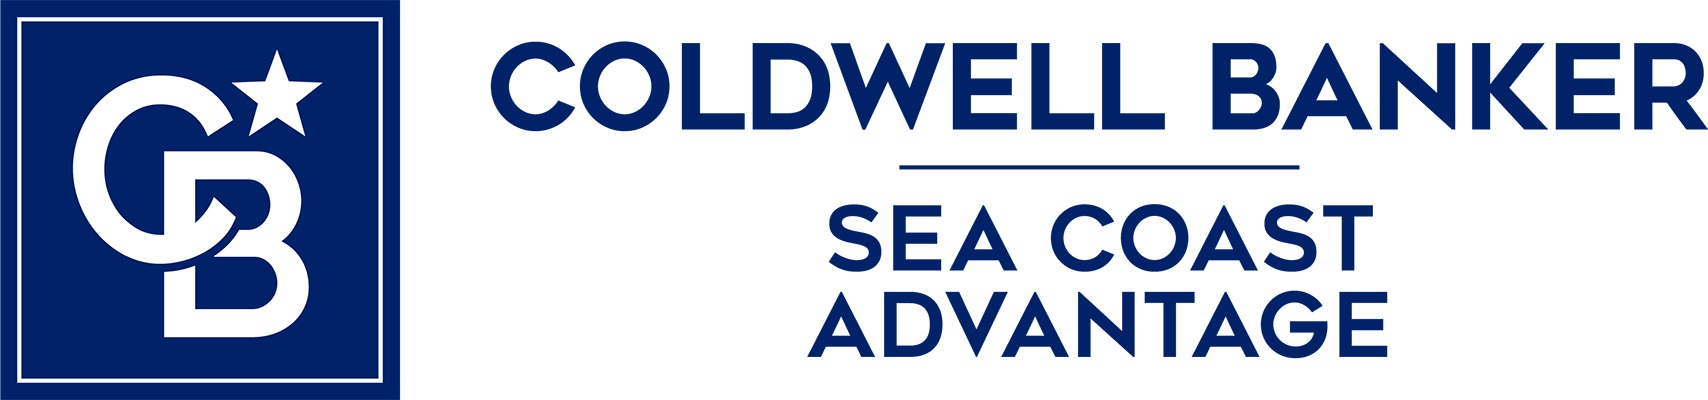 Brenda Prather - Coldwell Banker Sea Coast Advantage Realty